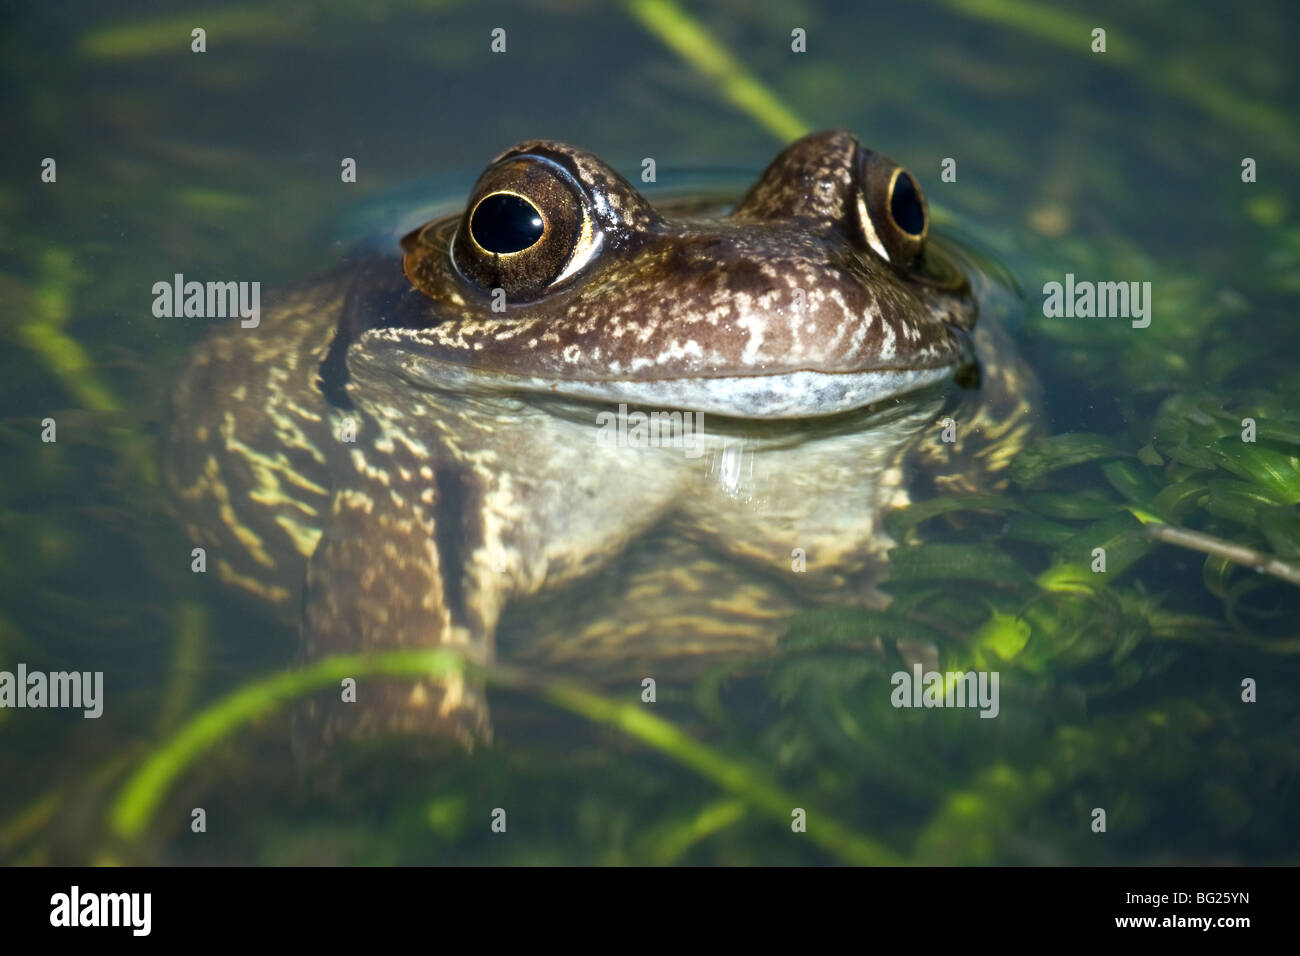 Single Common Frog (Rana temporaria) close up and enhanced with flash in the pond directly from the front - Stock Image